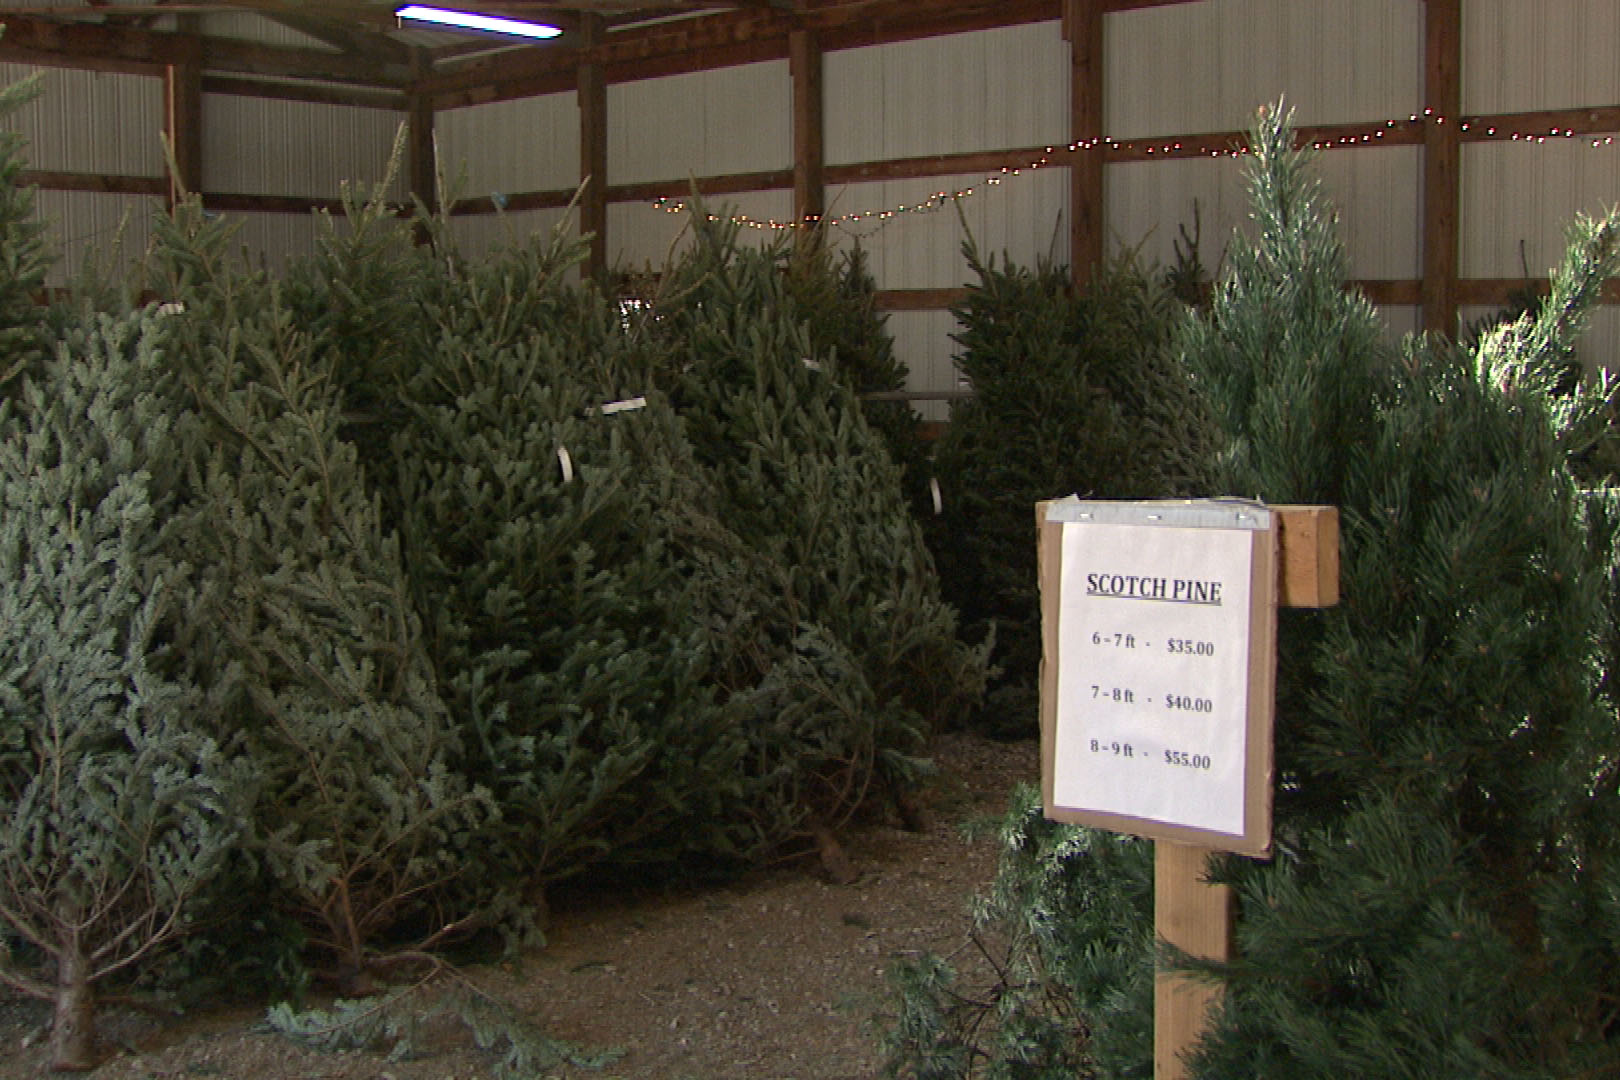 The national shortage stems from the 2007 recession. Christmas tree farms planted fewer trees then because of low demand and those trees are just now maturing.